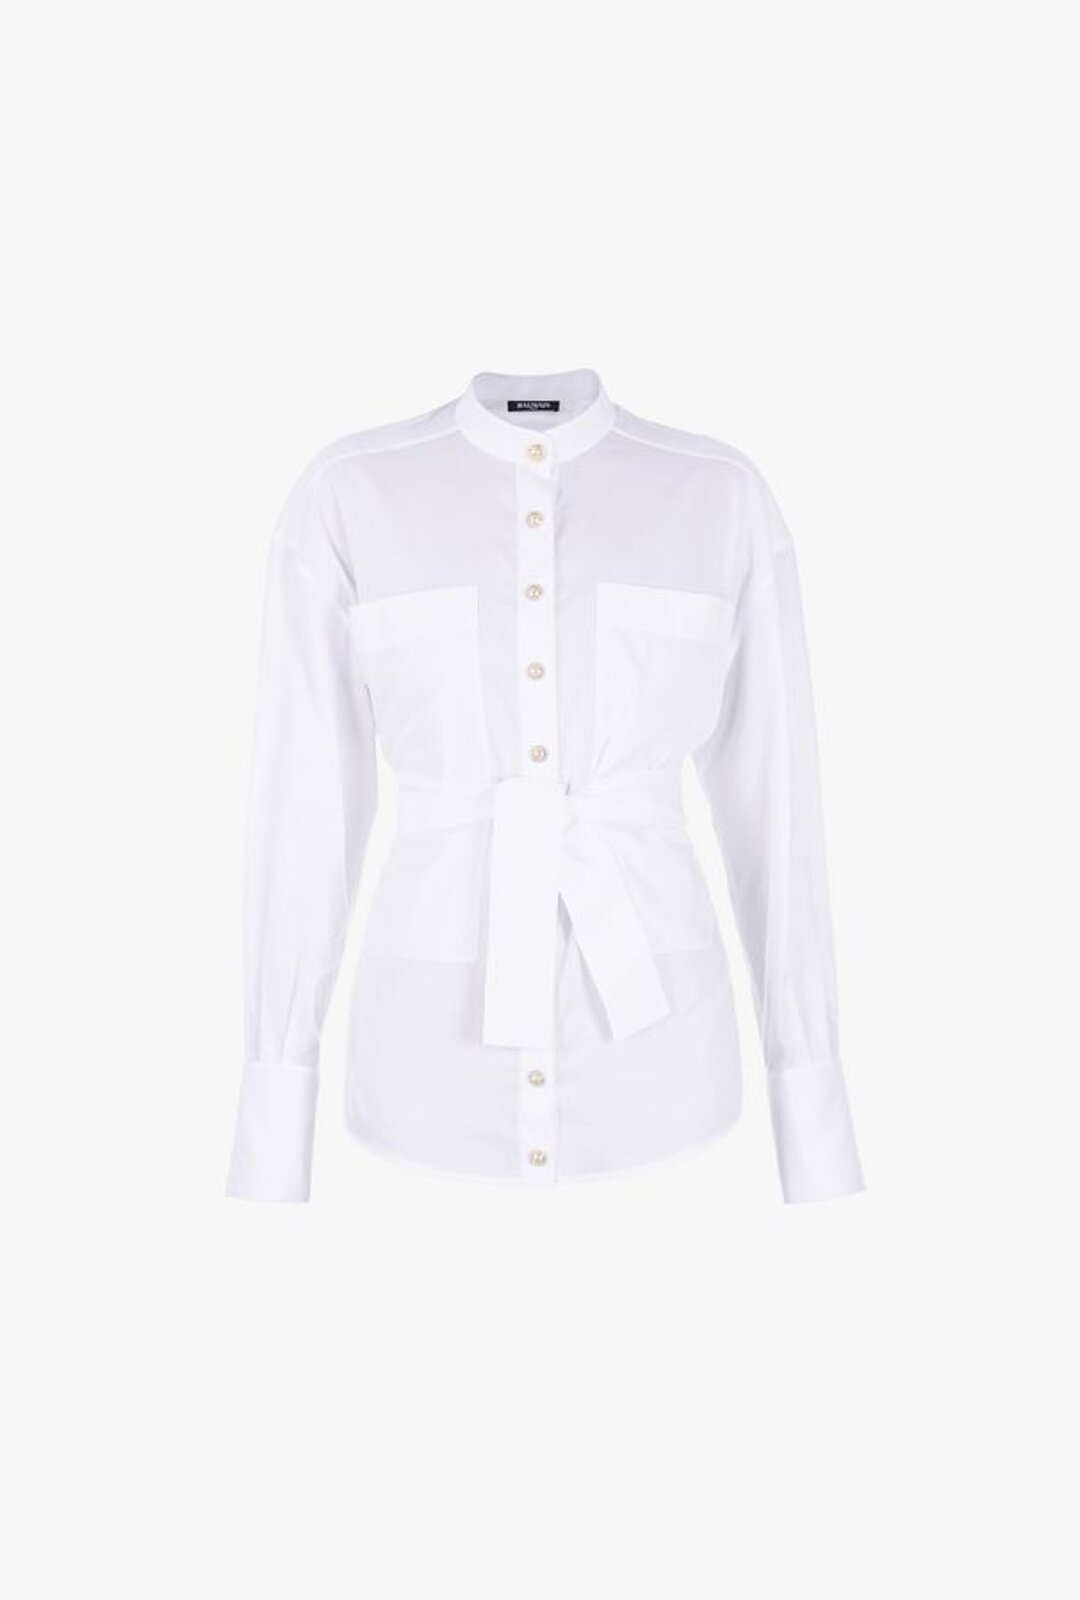 White Cotton Blouse With Belt - Balmain